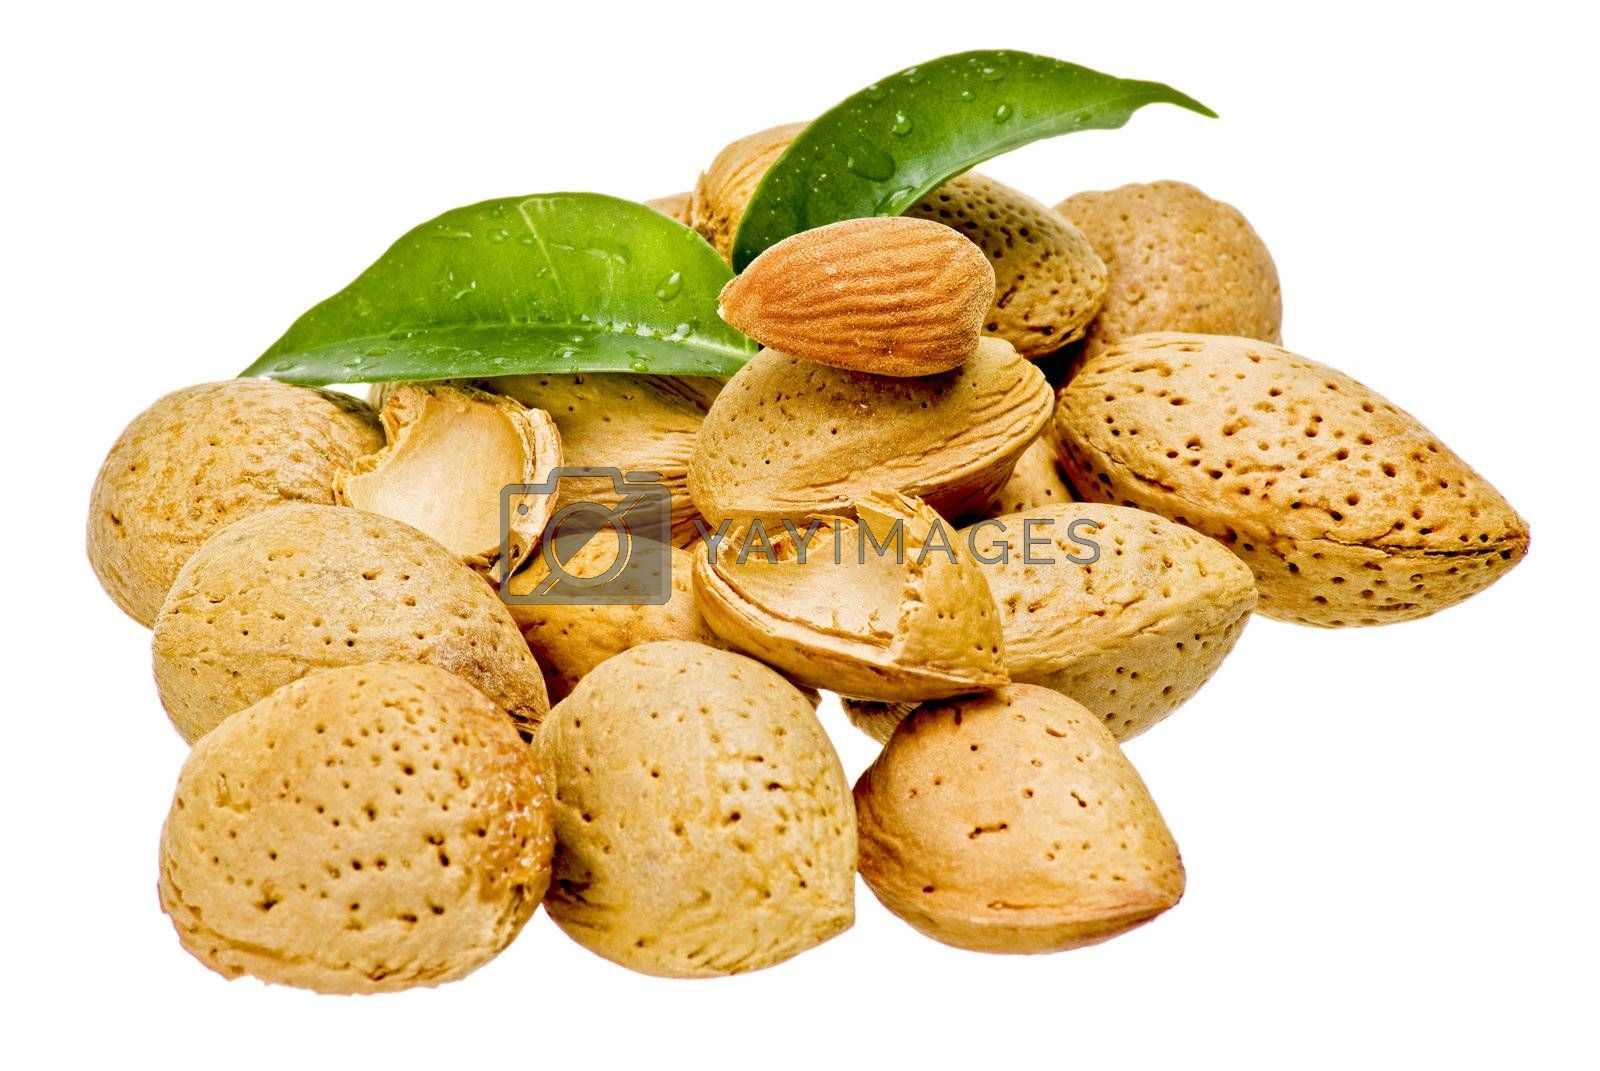 Almonds with kernel by caldix